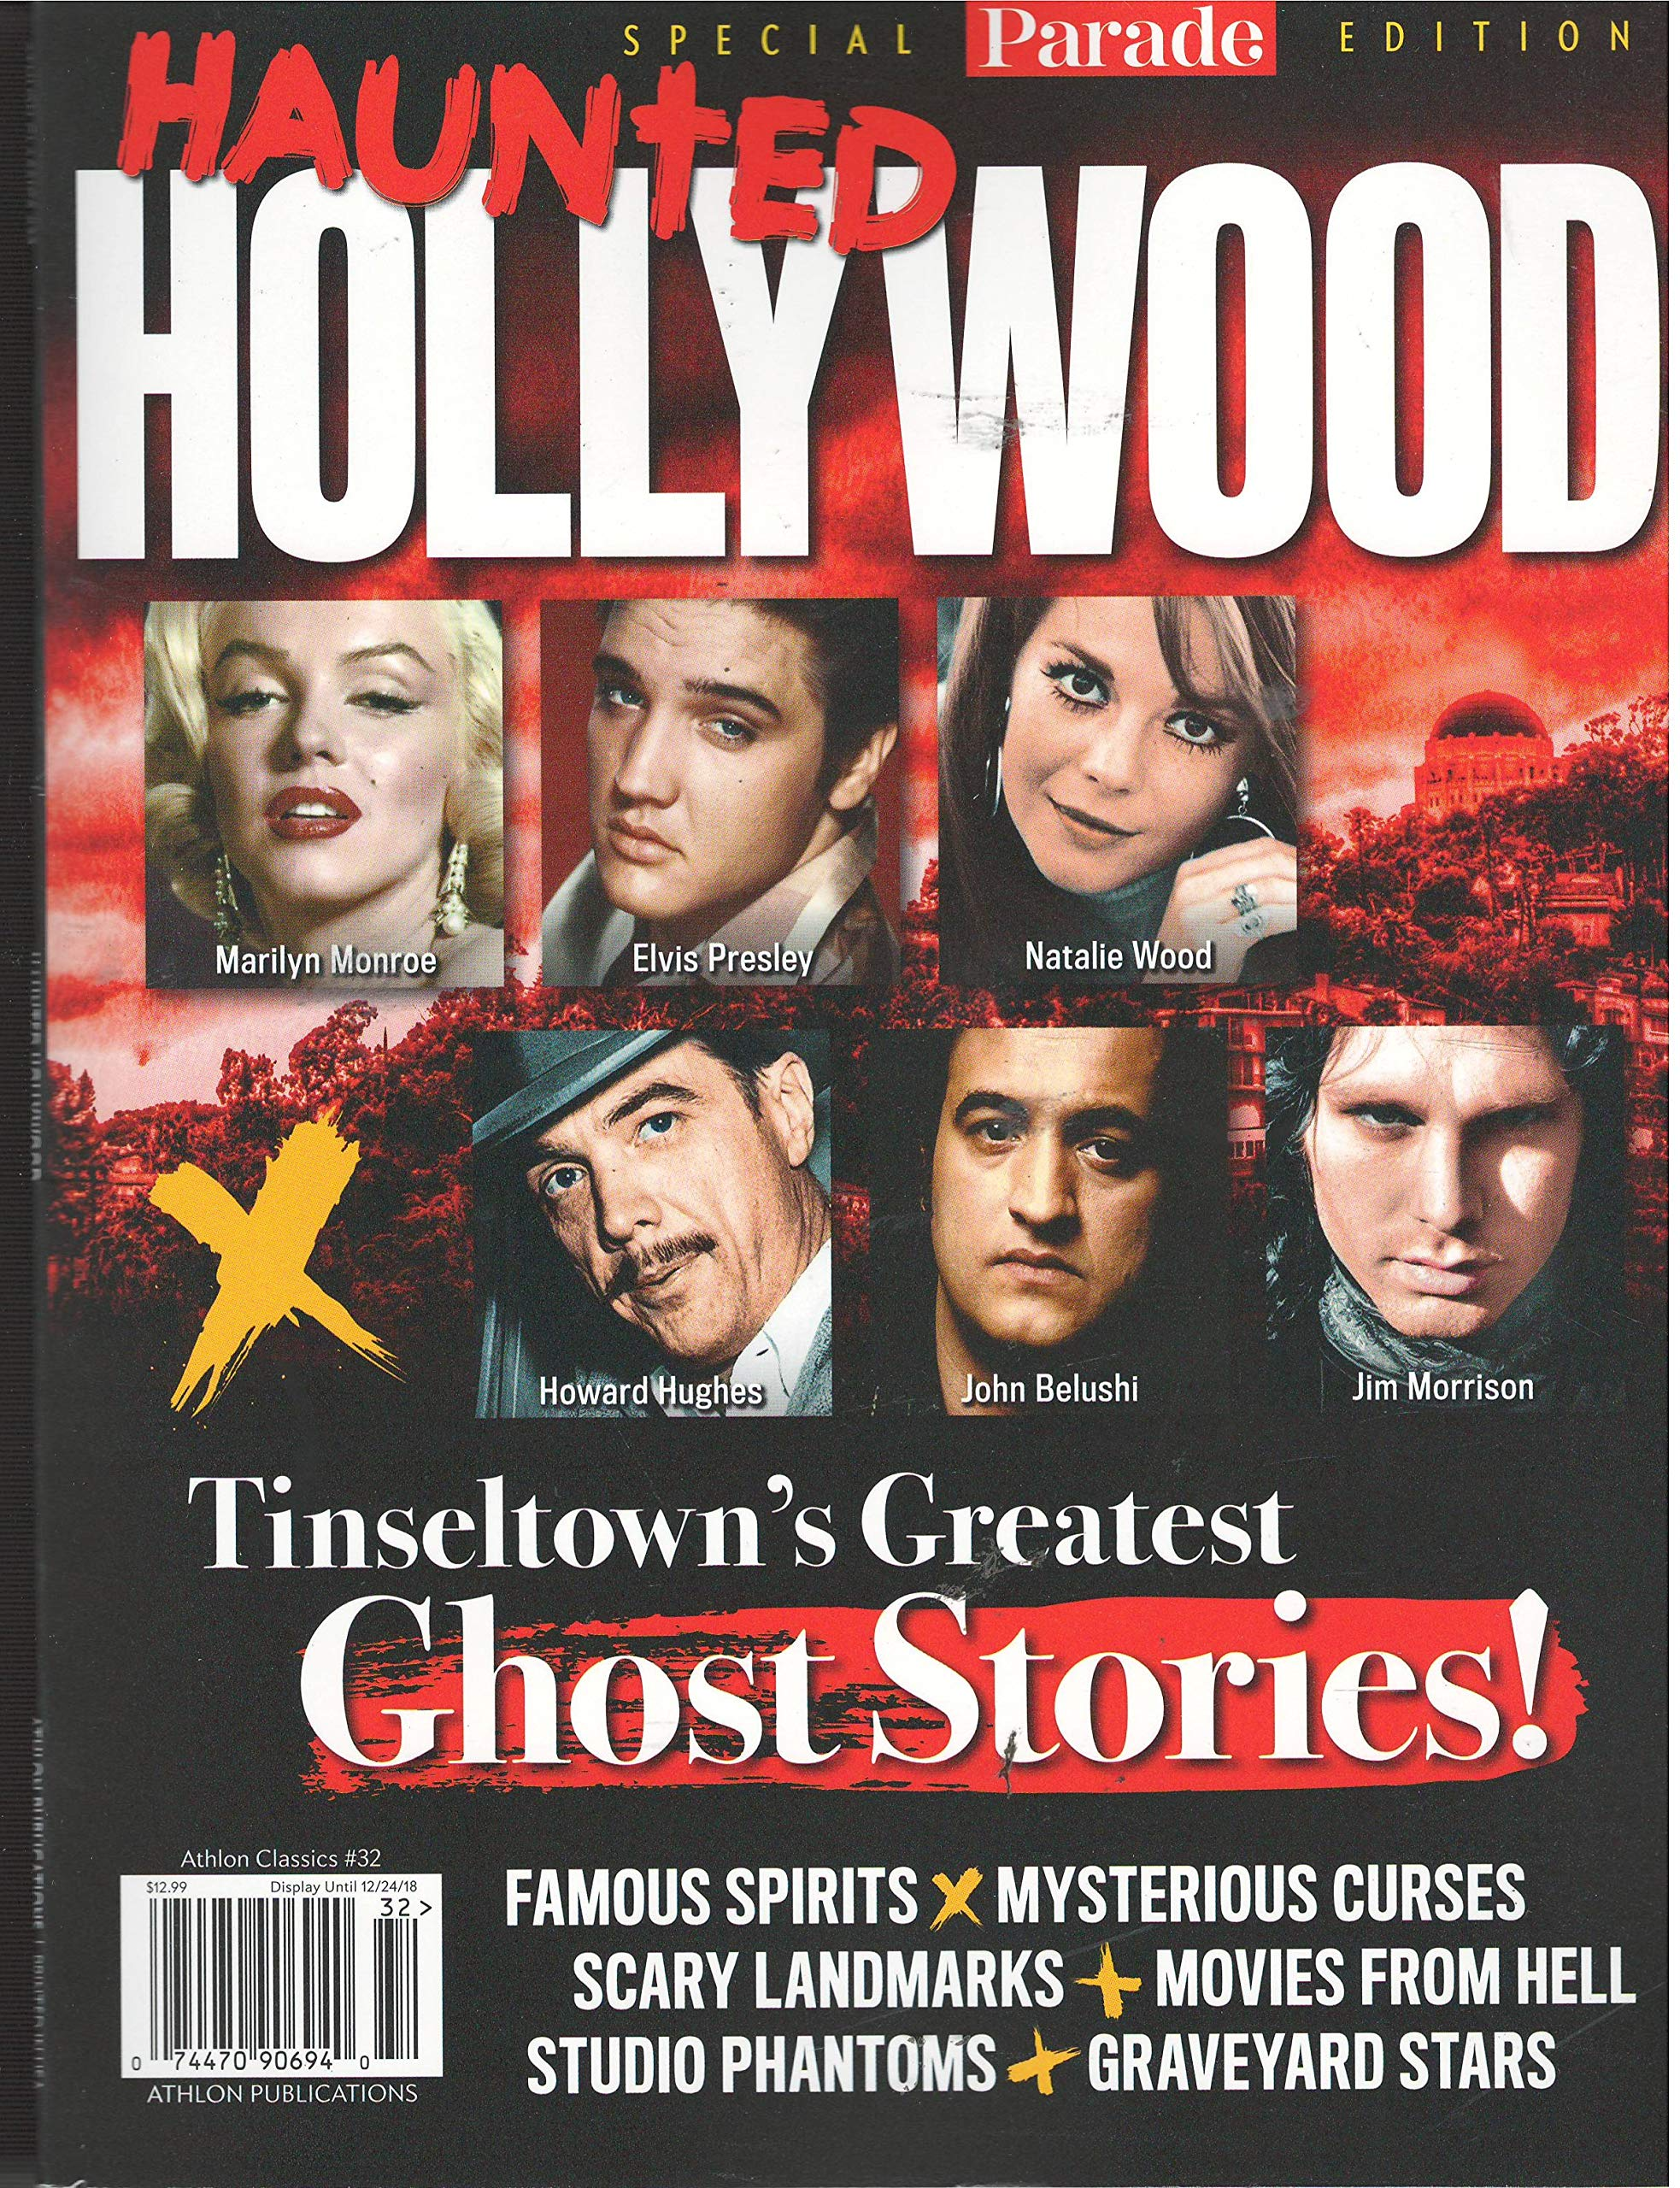 Parade Special edition Haunted Hollywood Magazine #32 2018: Various